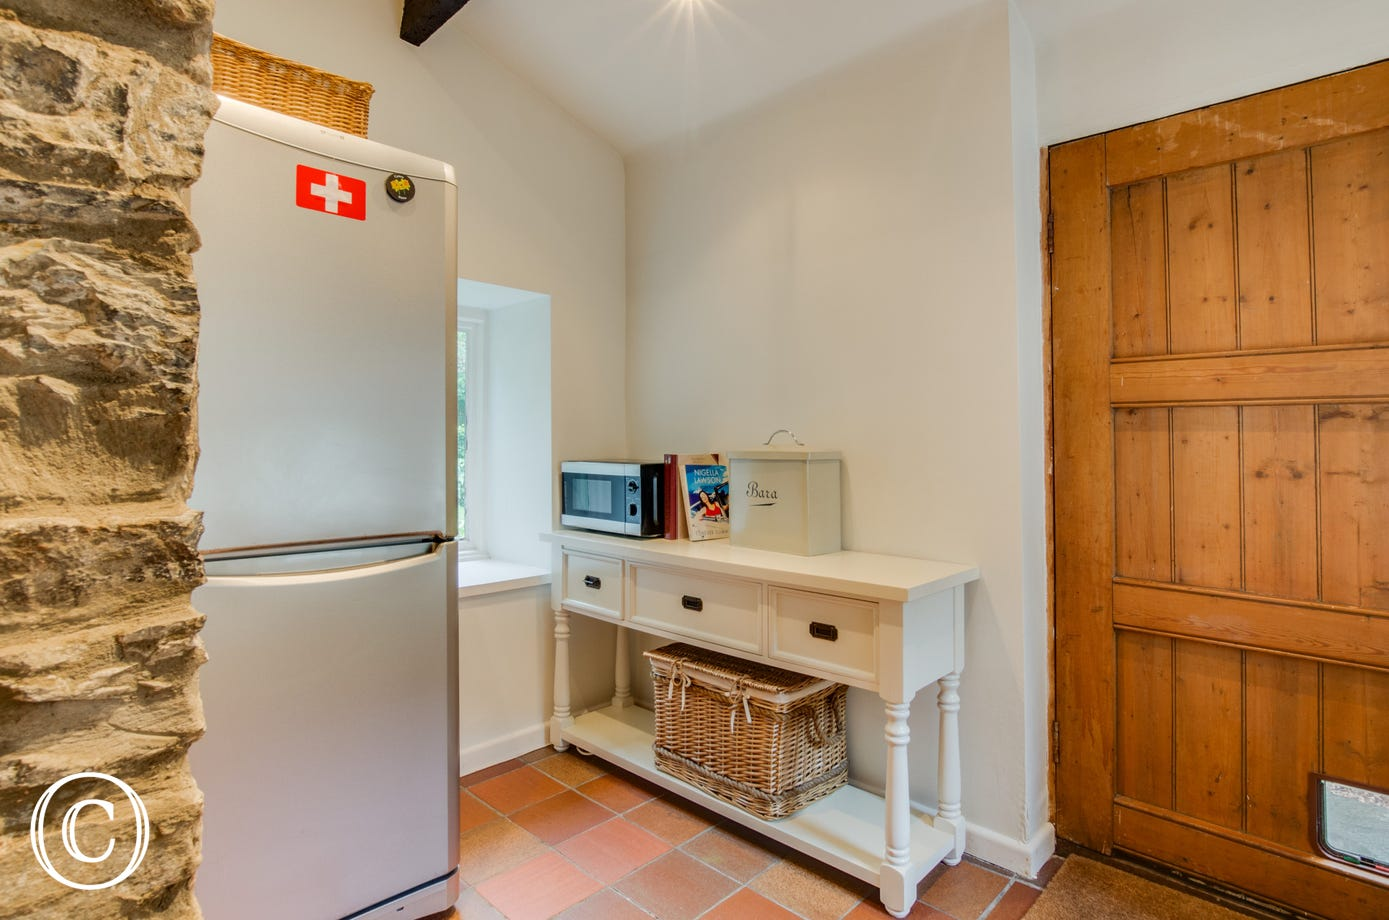 With fridge freezer and washing machine. Door to garden